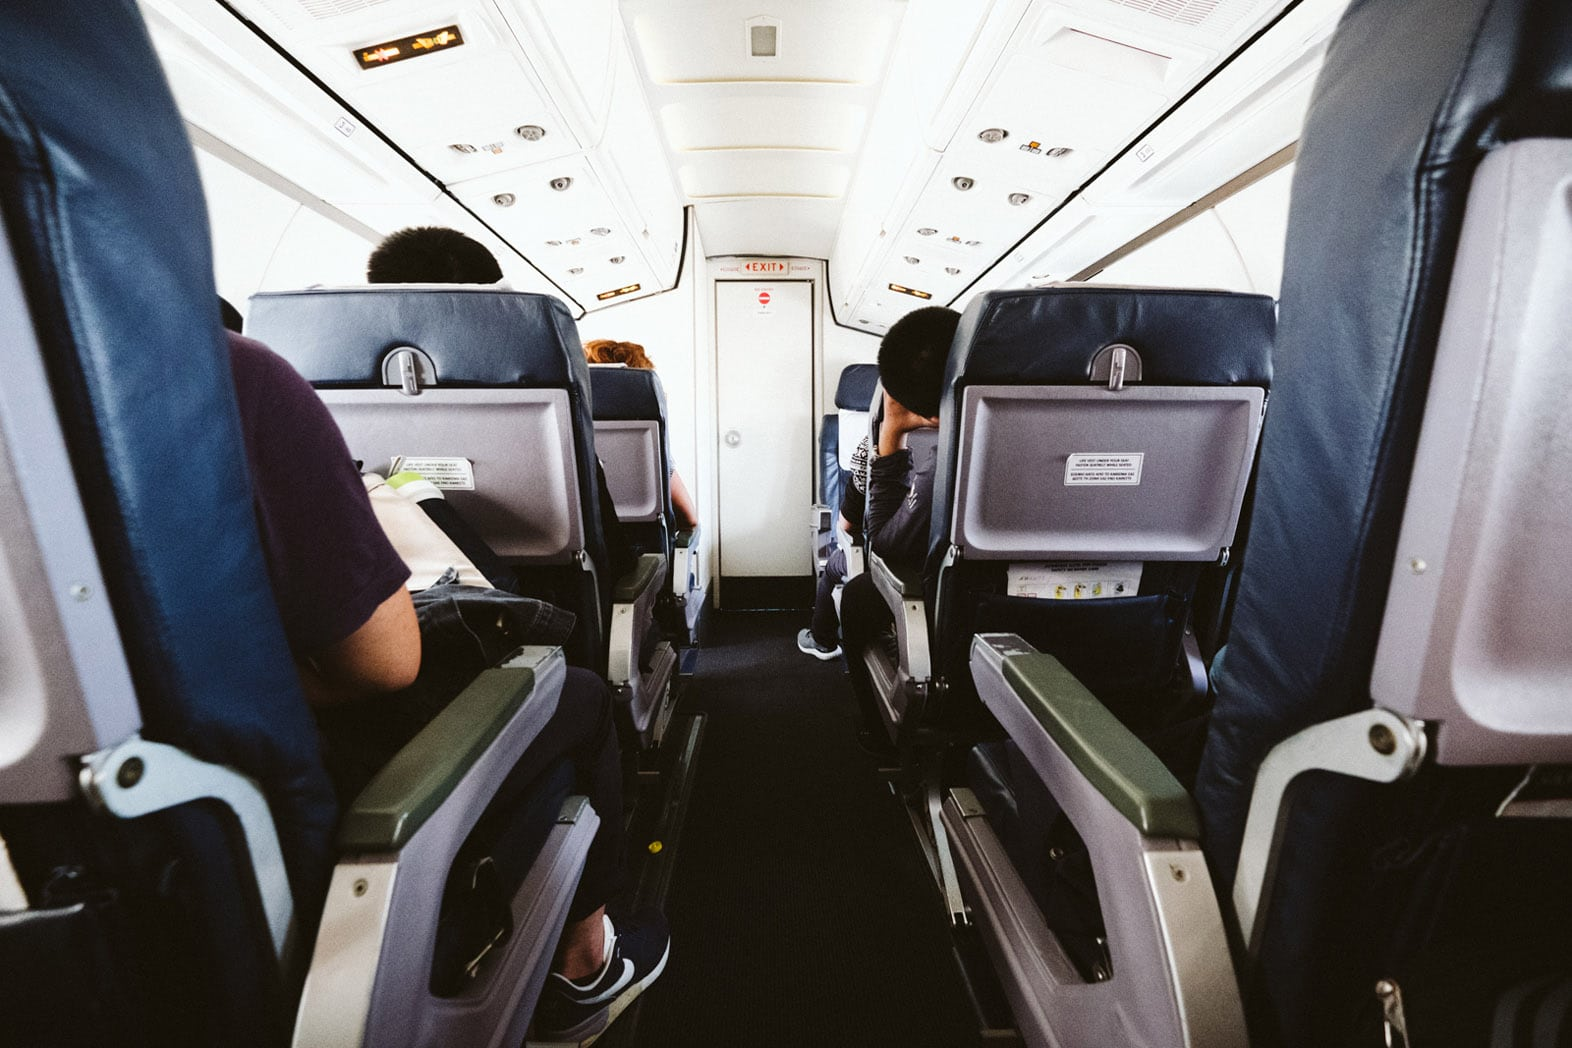 11 Genius Hacks to Take the Stress out of Flying